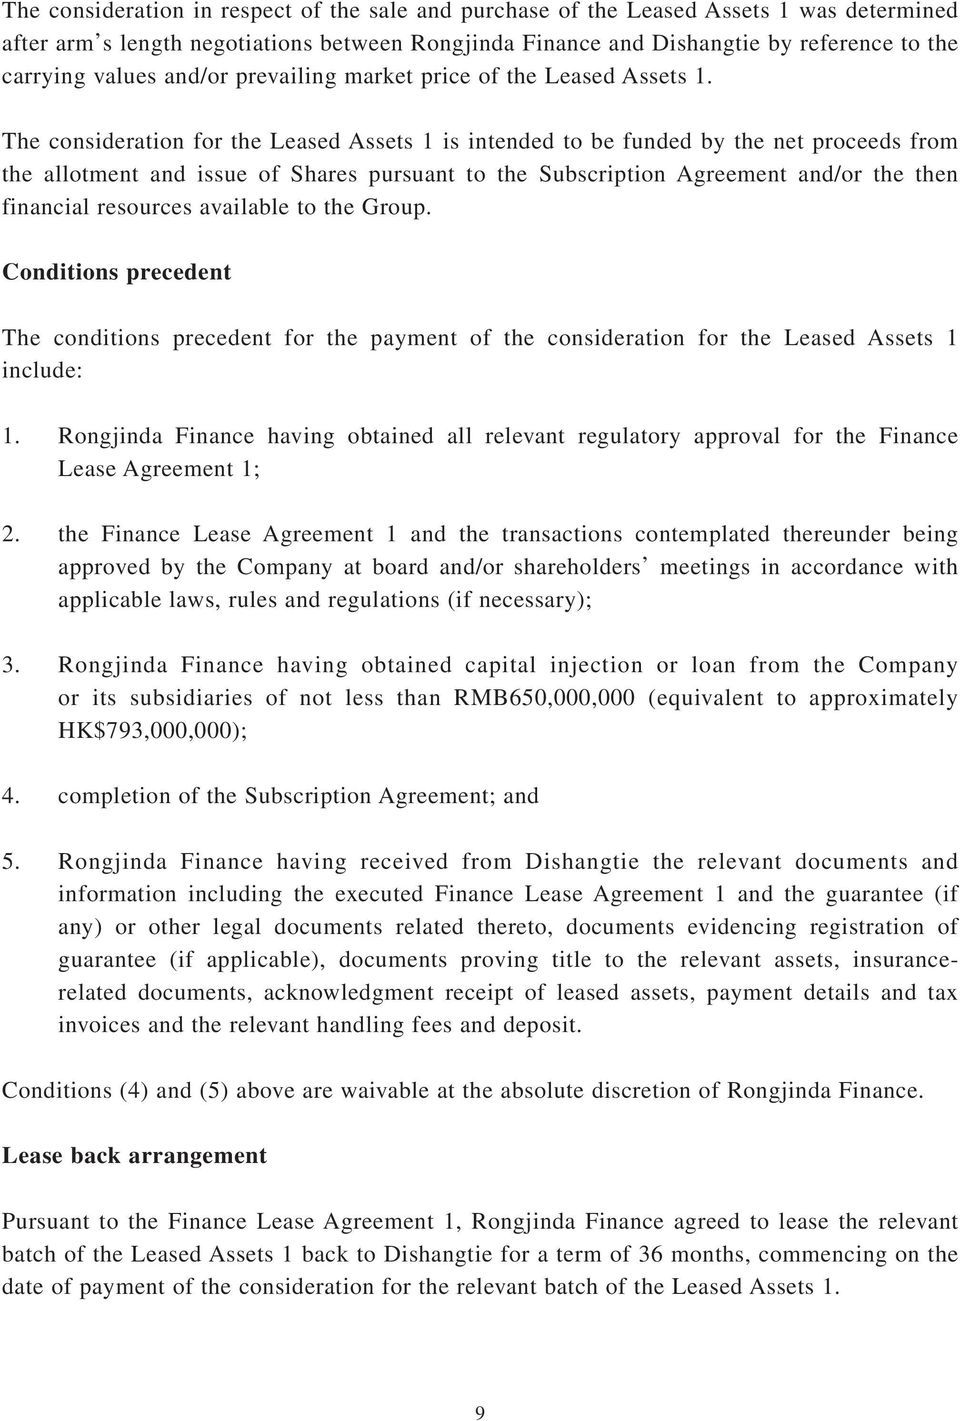 The consideration for the Leased Assets 1 is intended to be funded by the net proceeds from the allotment and issue of Shares pursuant to the Subscription Agreement and/or the then financial